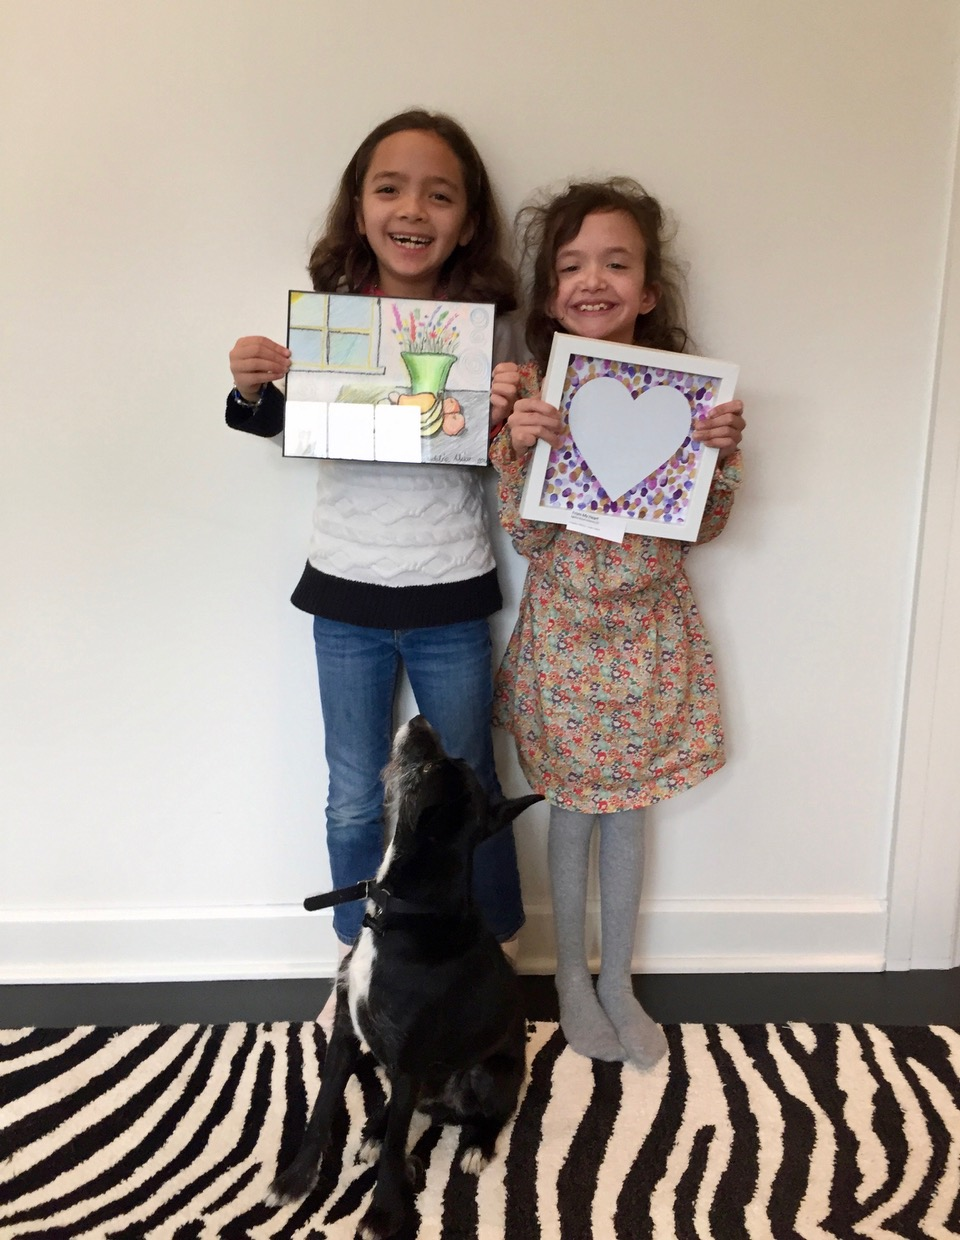 Proud artists Madeline and Agatha Holloway, McGilvra Elementary School classmates, pose with Agatha's dog Tuxedo.